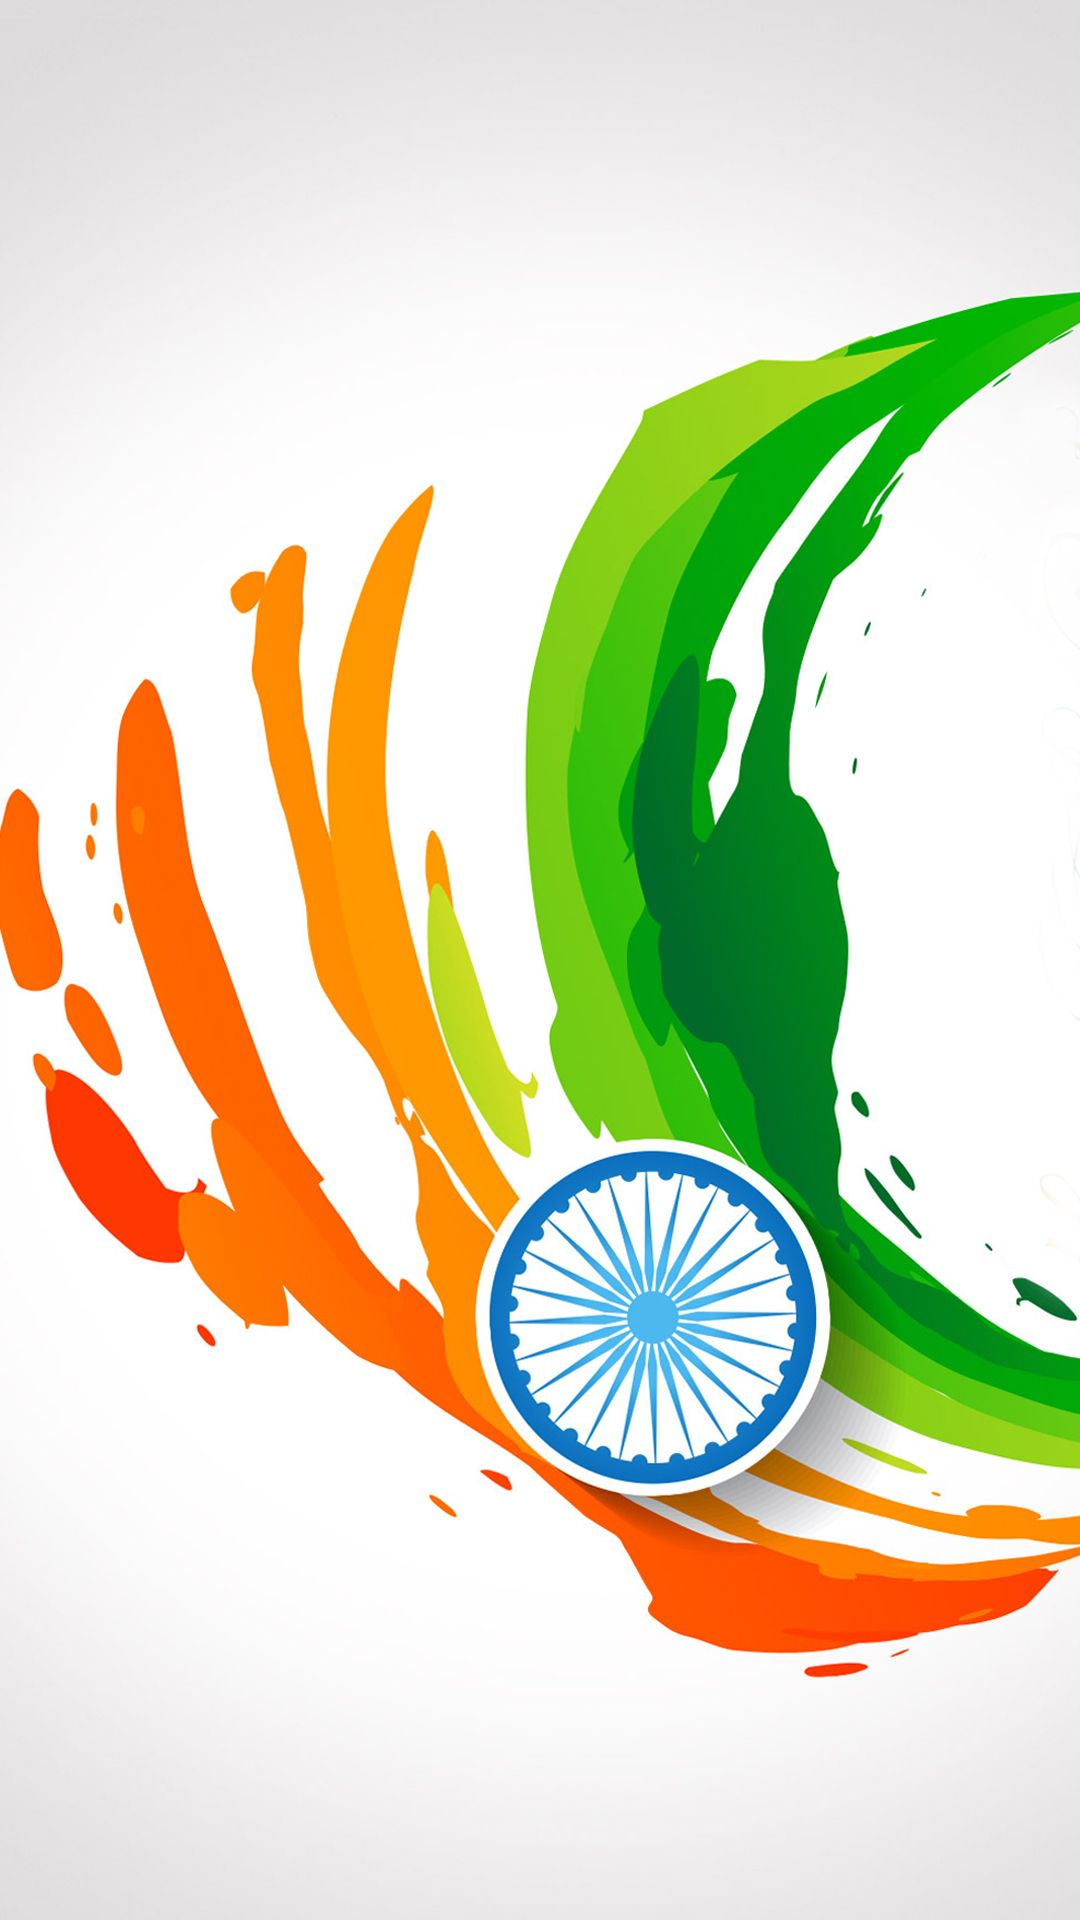 India Flag For Mobile Phone Wallpaper 14 Of 17 Abstract